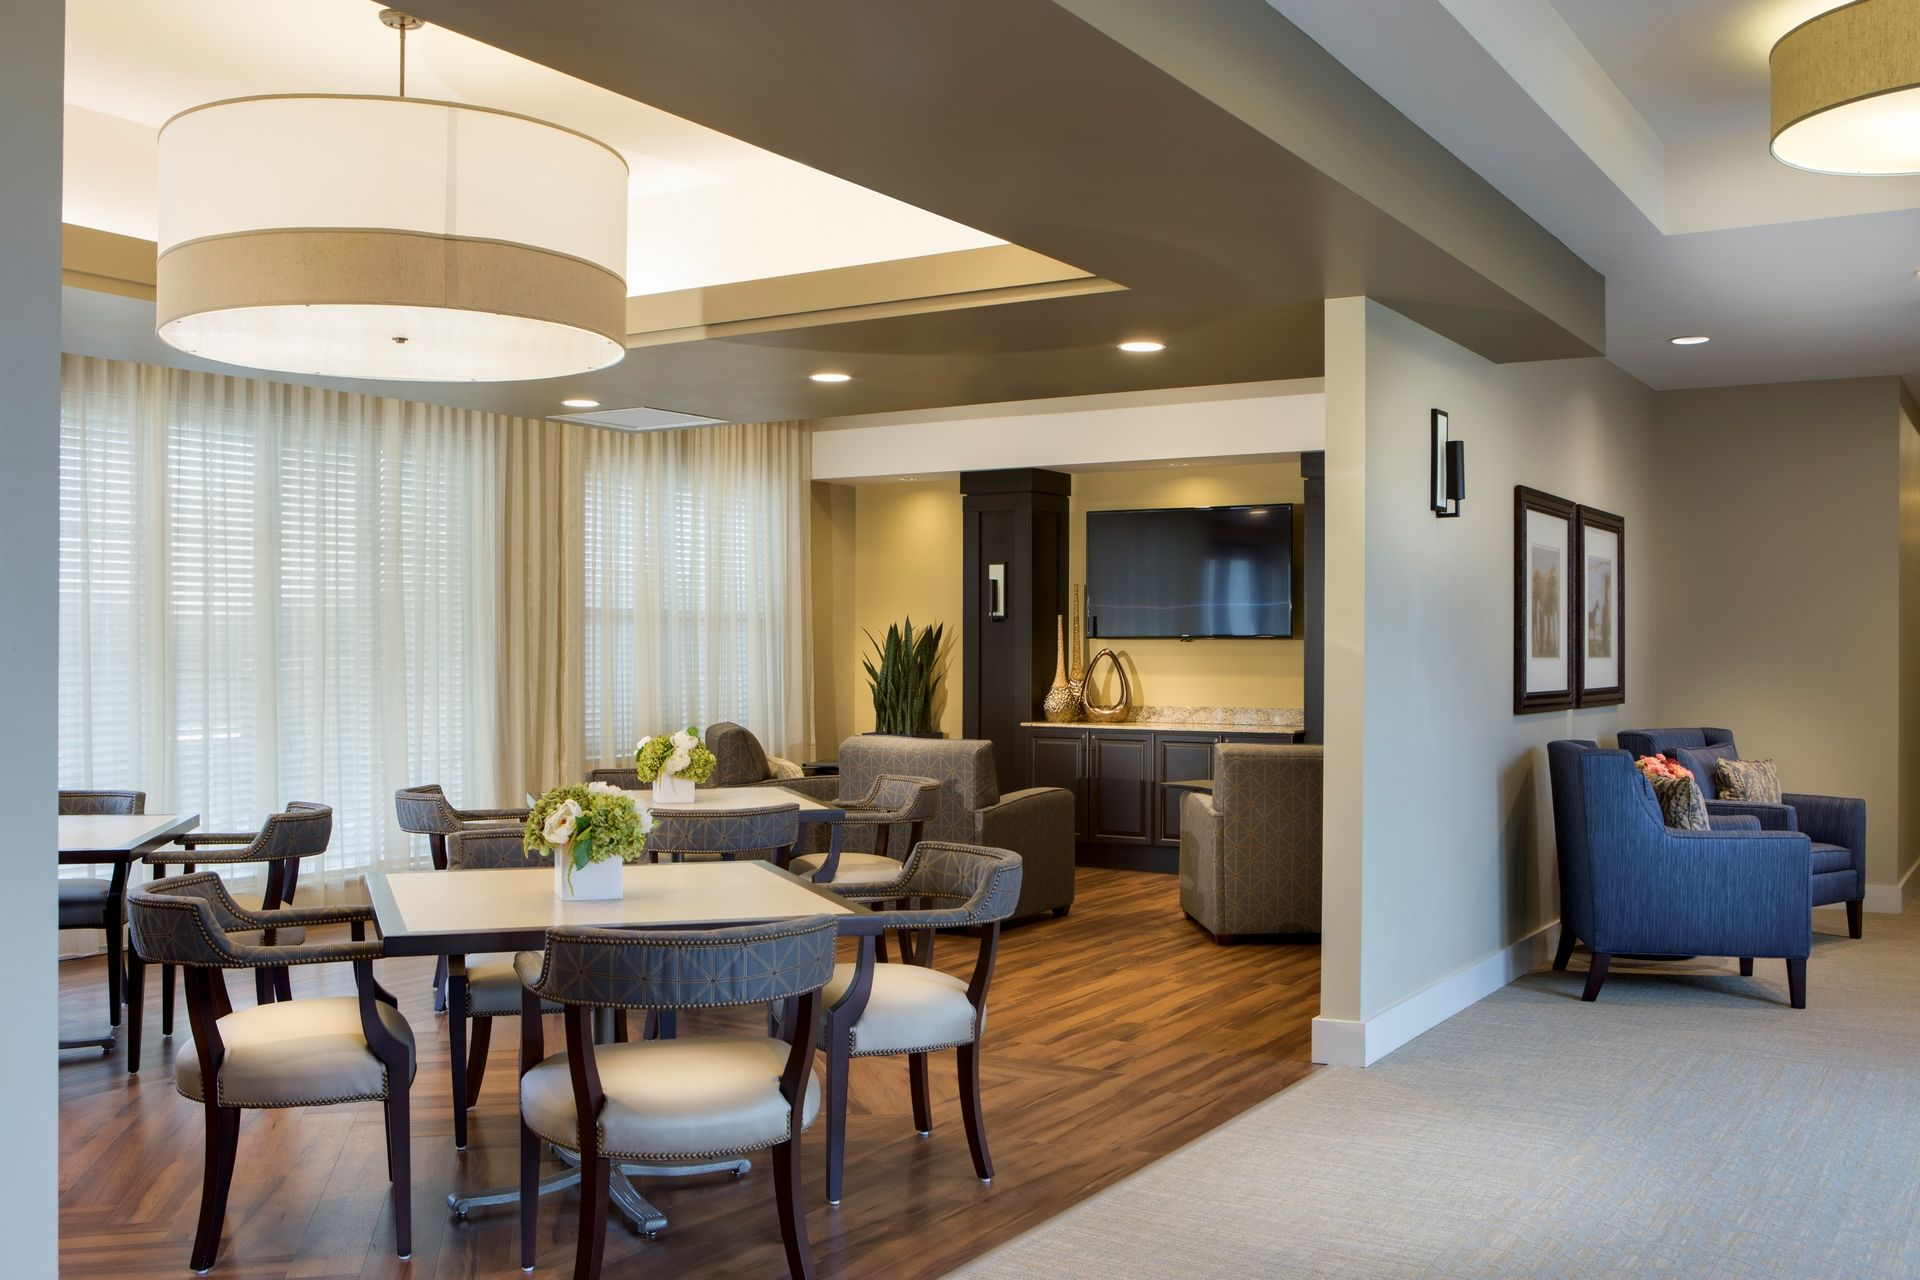 Greer Memory Care Design THW Dining and Cooridoor